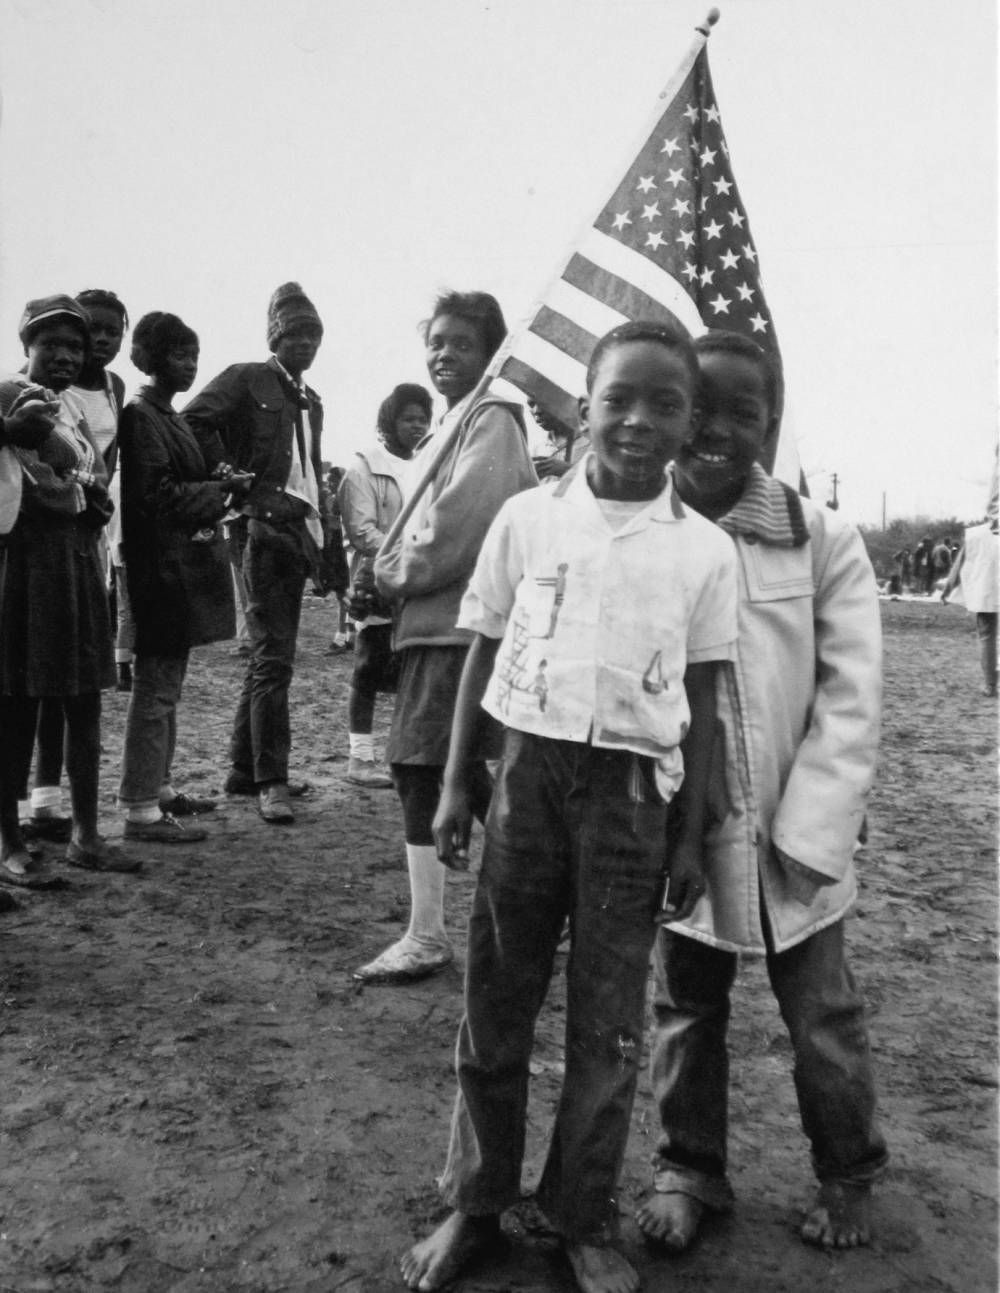 Untitled (Boys with Flag), 1965. Photograph by Dennis Hopper.